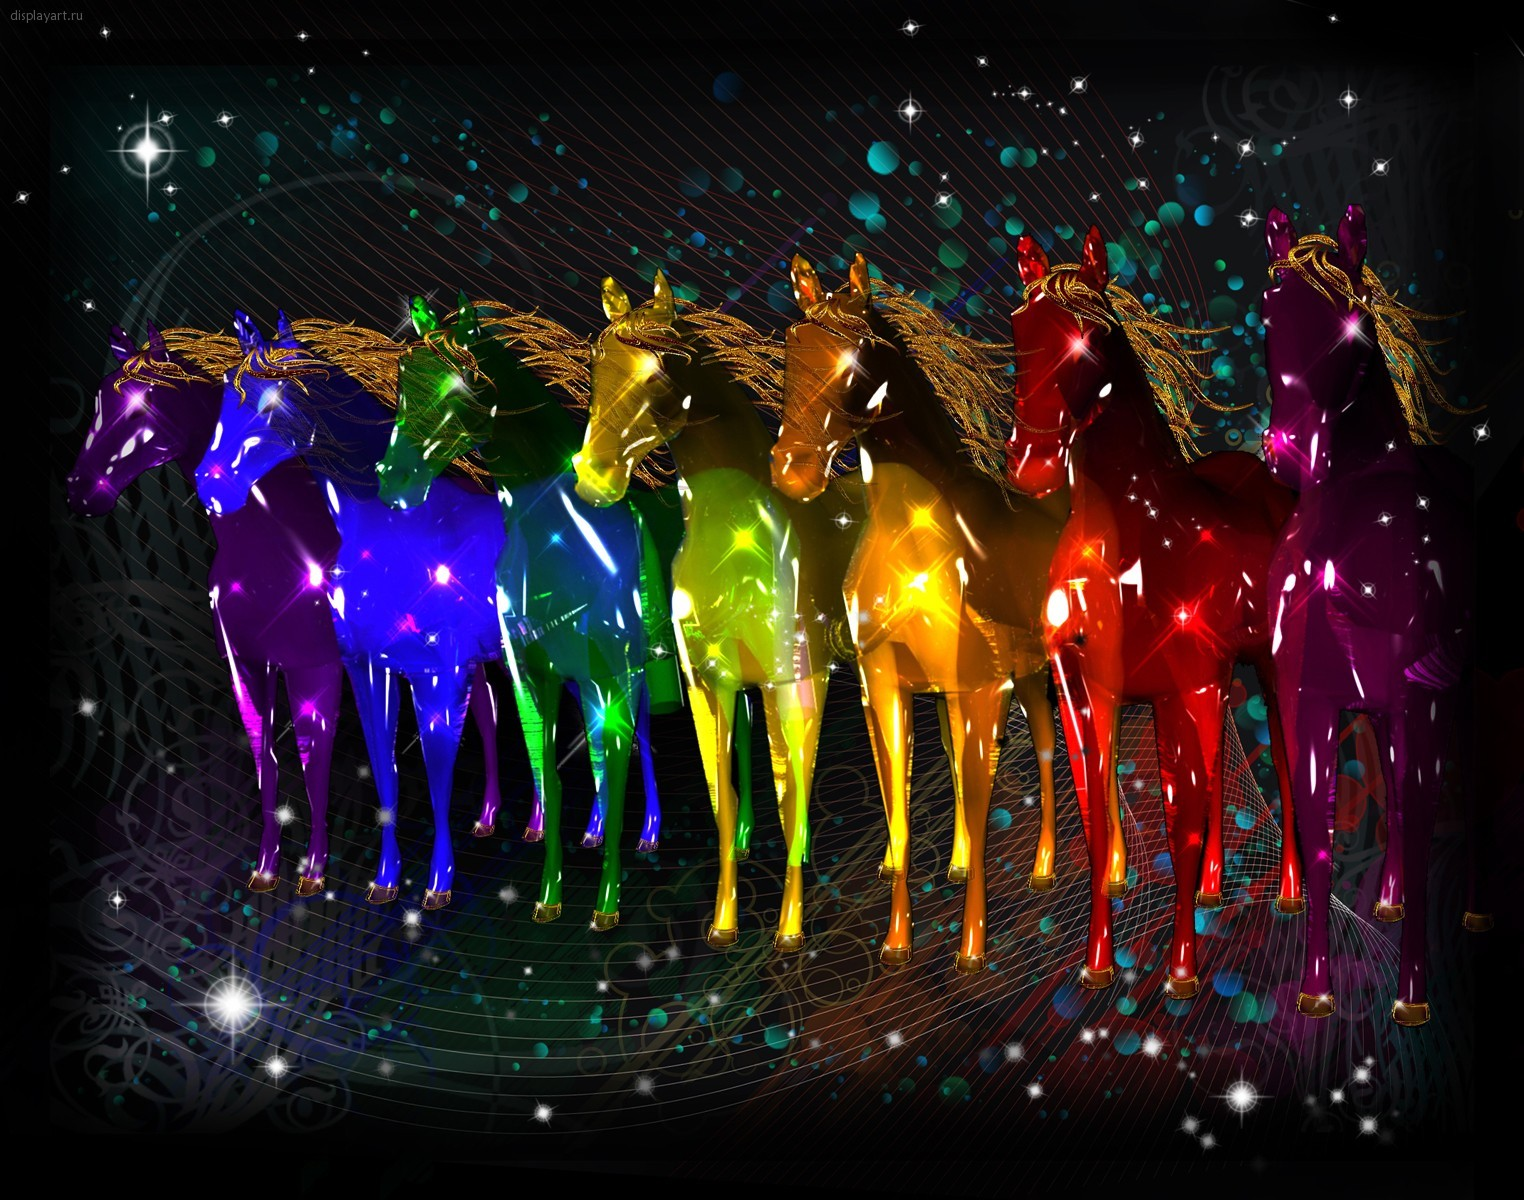 13823 download wallpaper Animals, Art, Horses screensavers and pictures for free